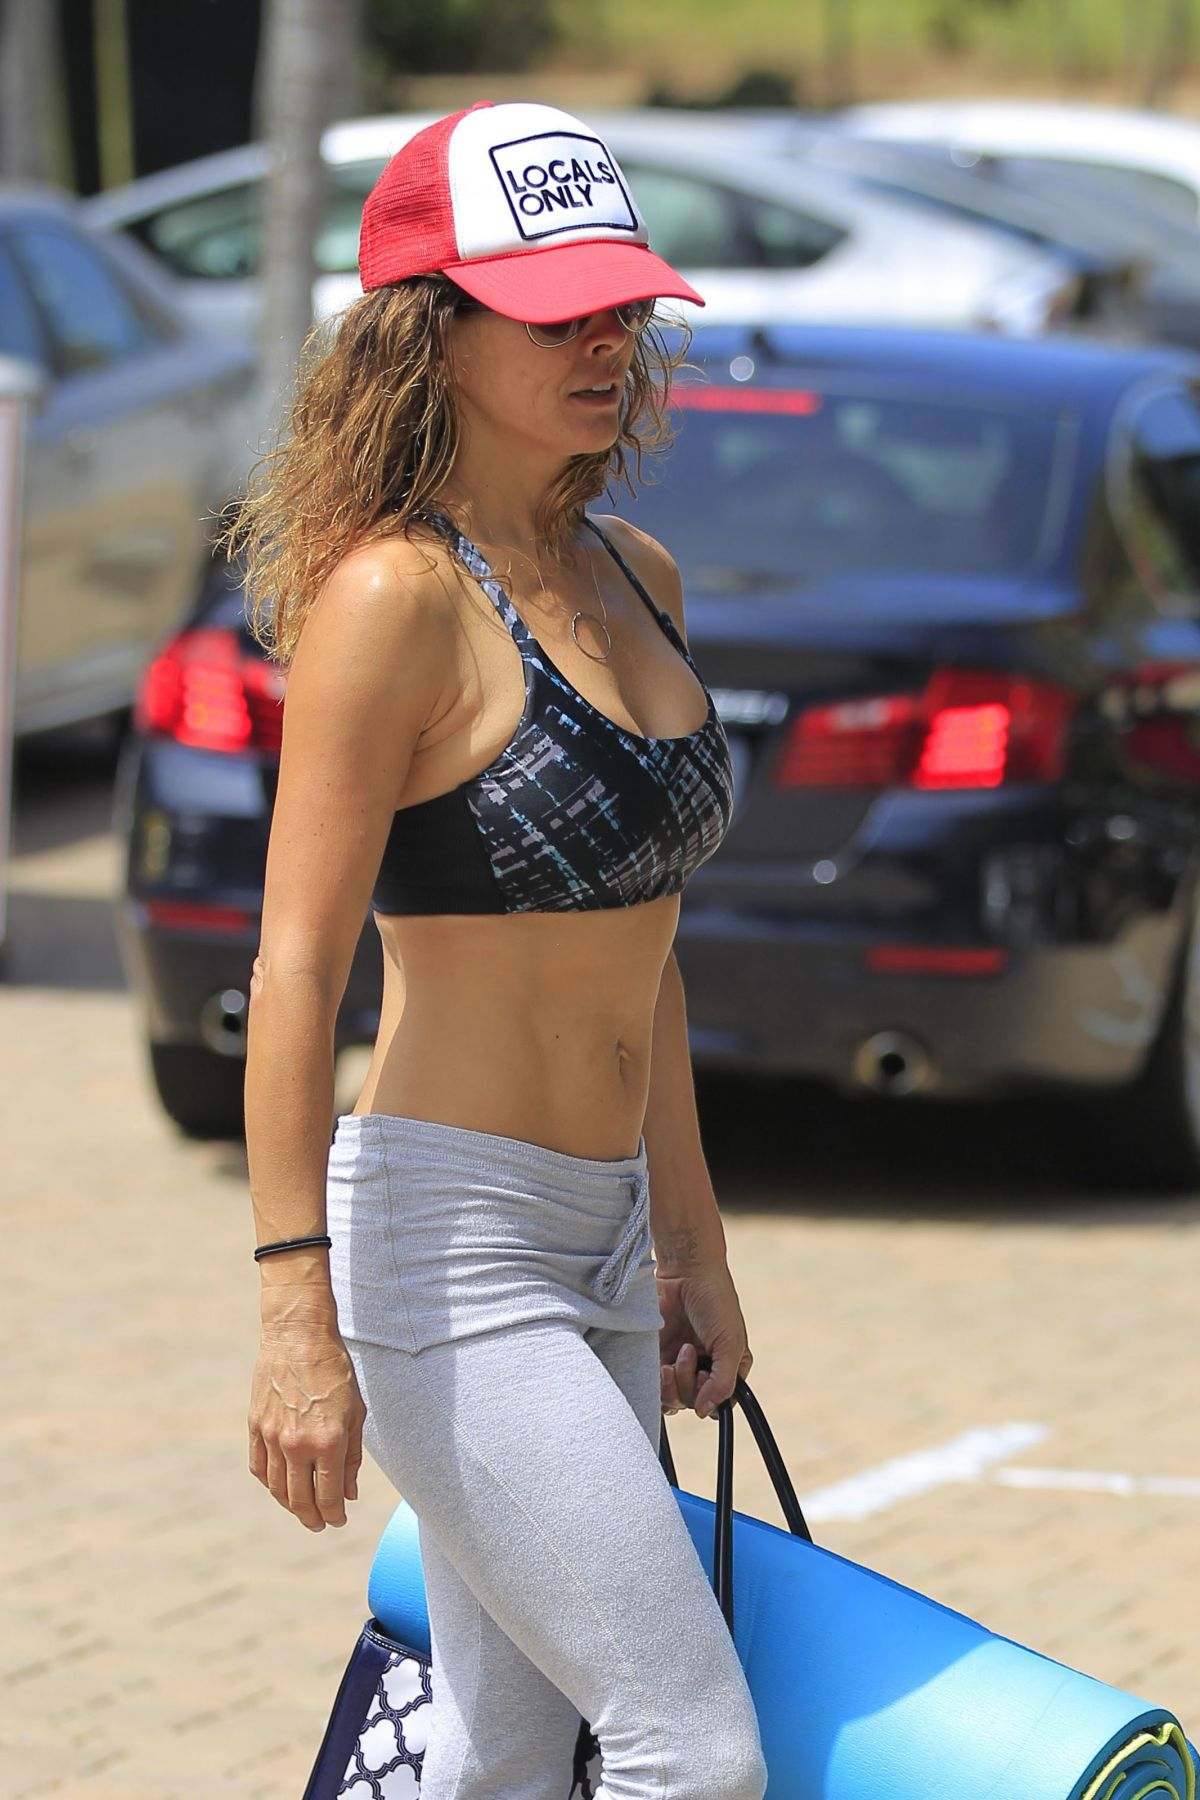 BROOKE BURKE at a Yoga Class in Malibu 08/14/2016